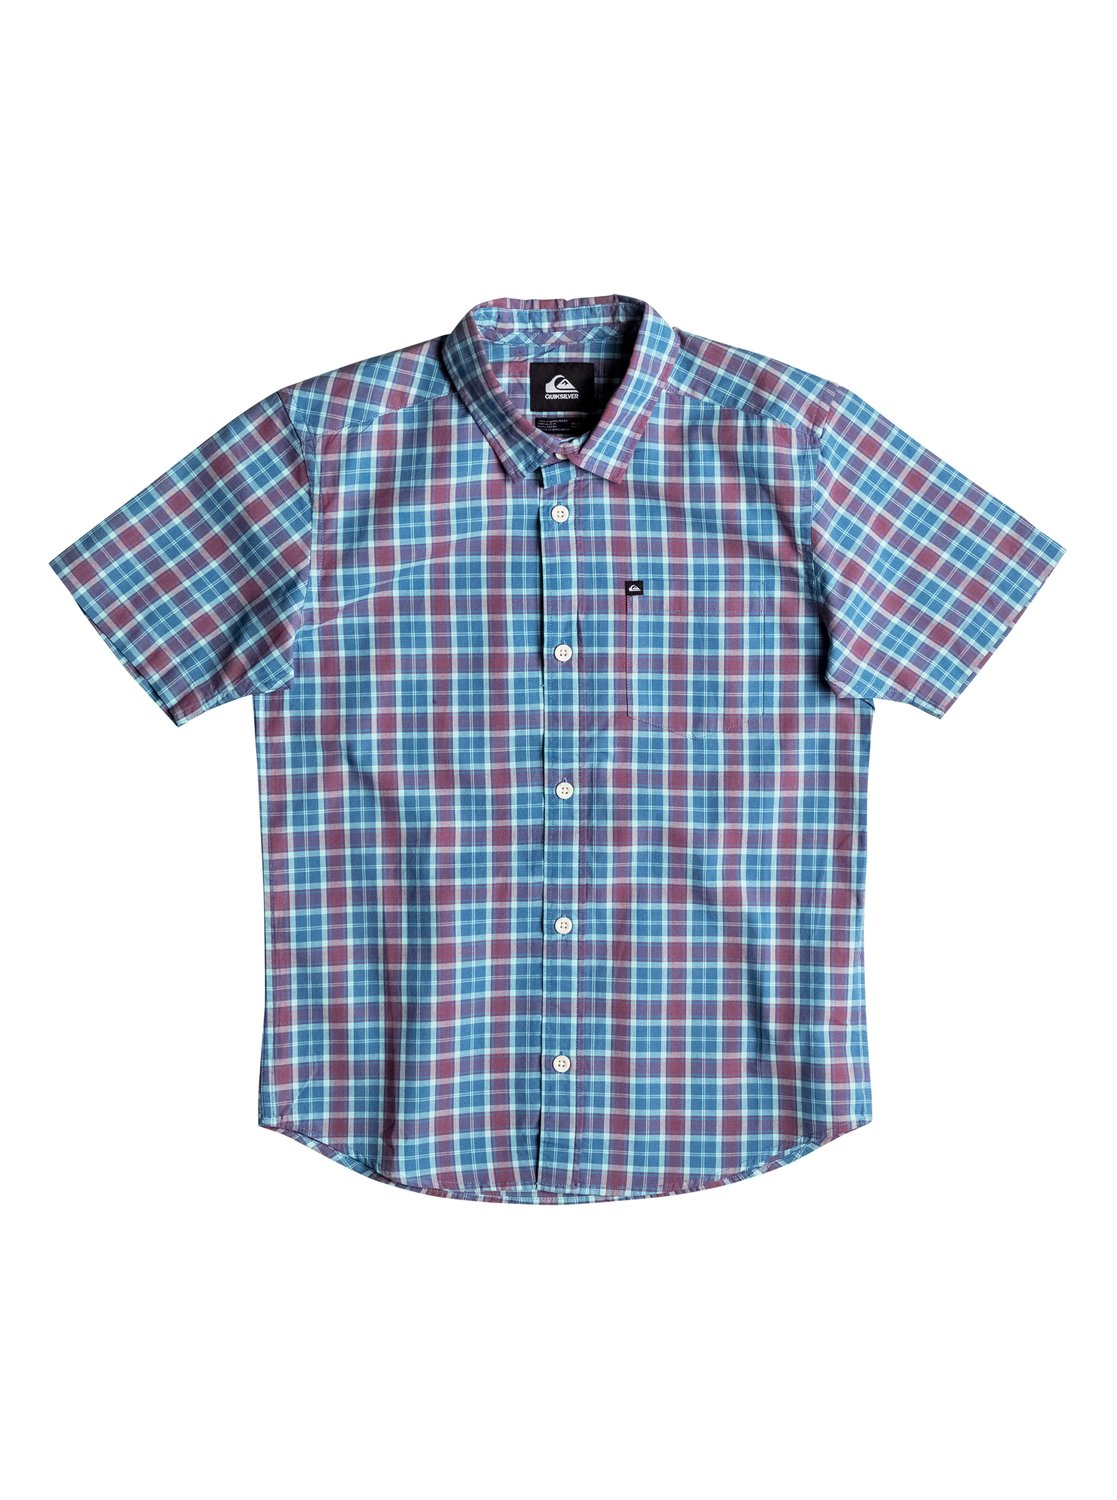 Boy's Everyday Check Short Sleeve Shirt